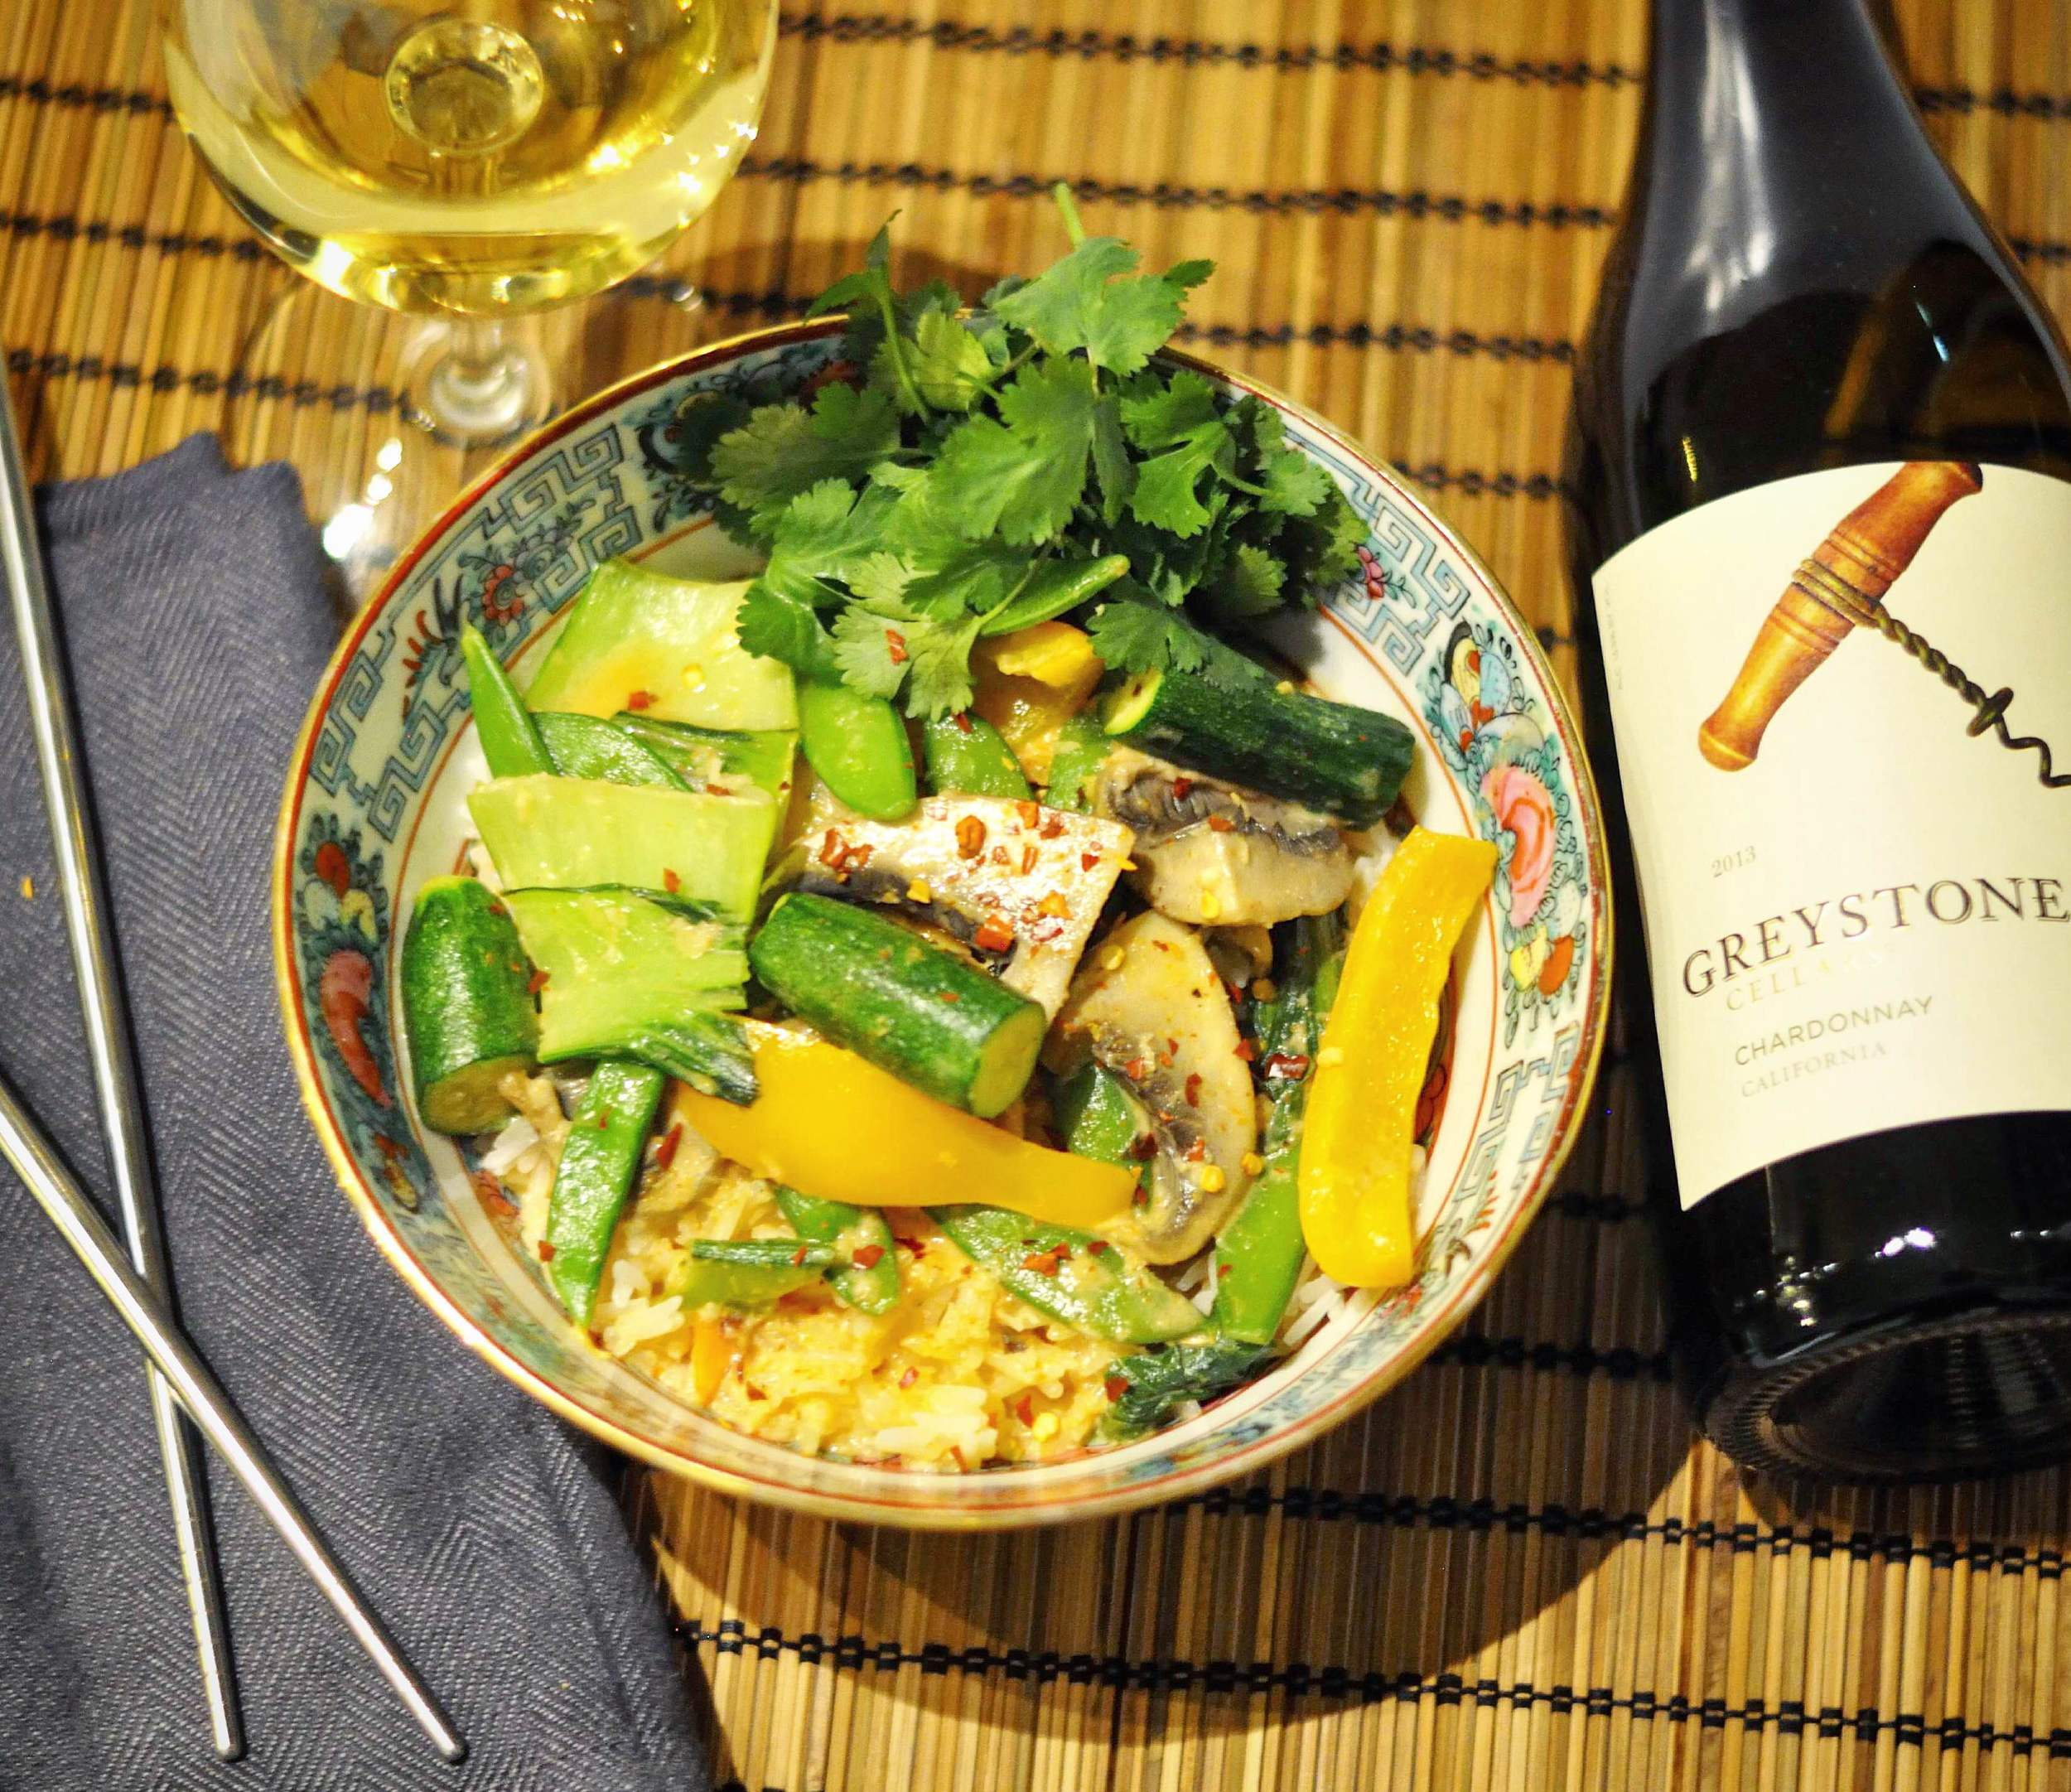 Red curry and wine